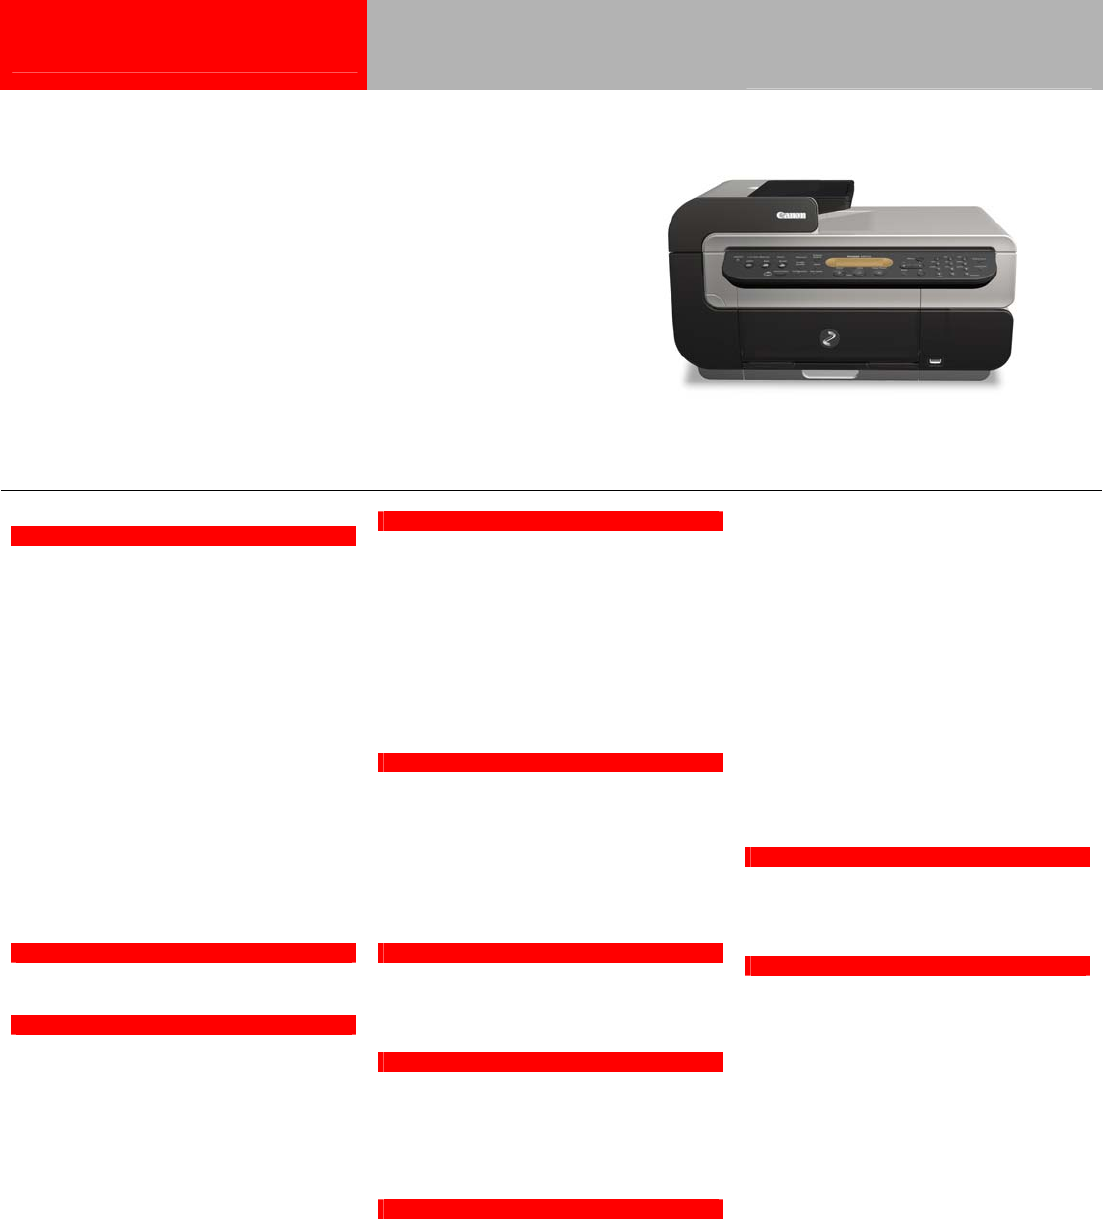 canon all in one printer mp530 user guide manualsonline com rh office manualsonline com canon mp530 printer manual canon mp530 printer driver free download